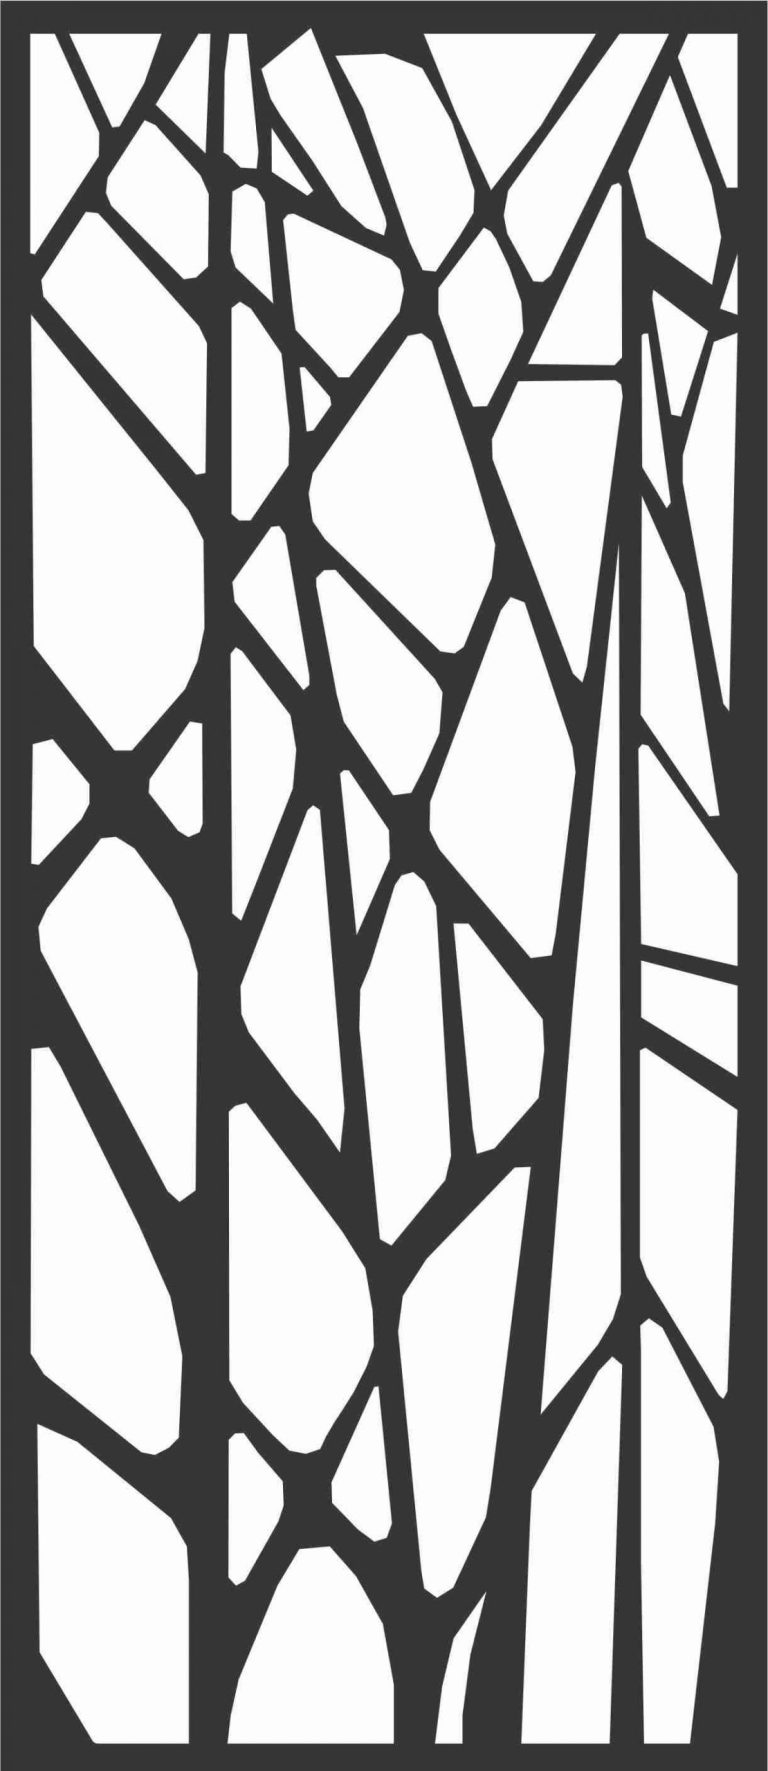 Floral Screen Patterns Design 49 Free DXF File